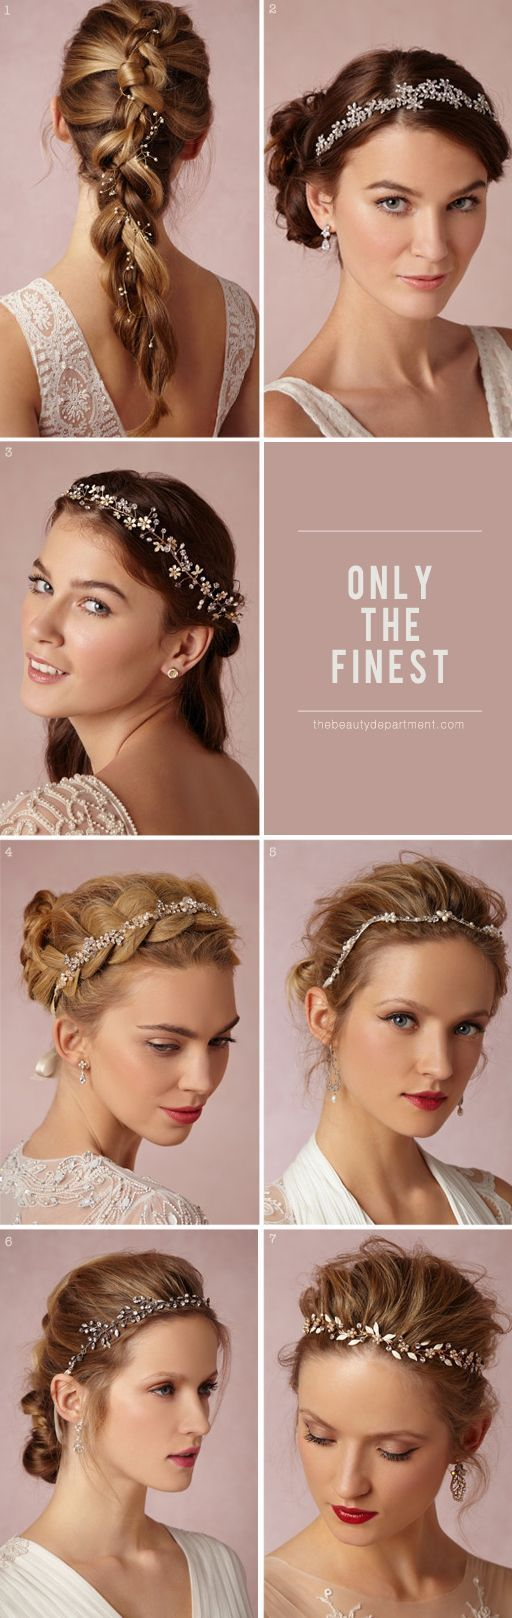 Coiffure mariage : WEDDING HAIR ACCESSORIES